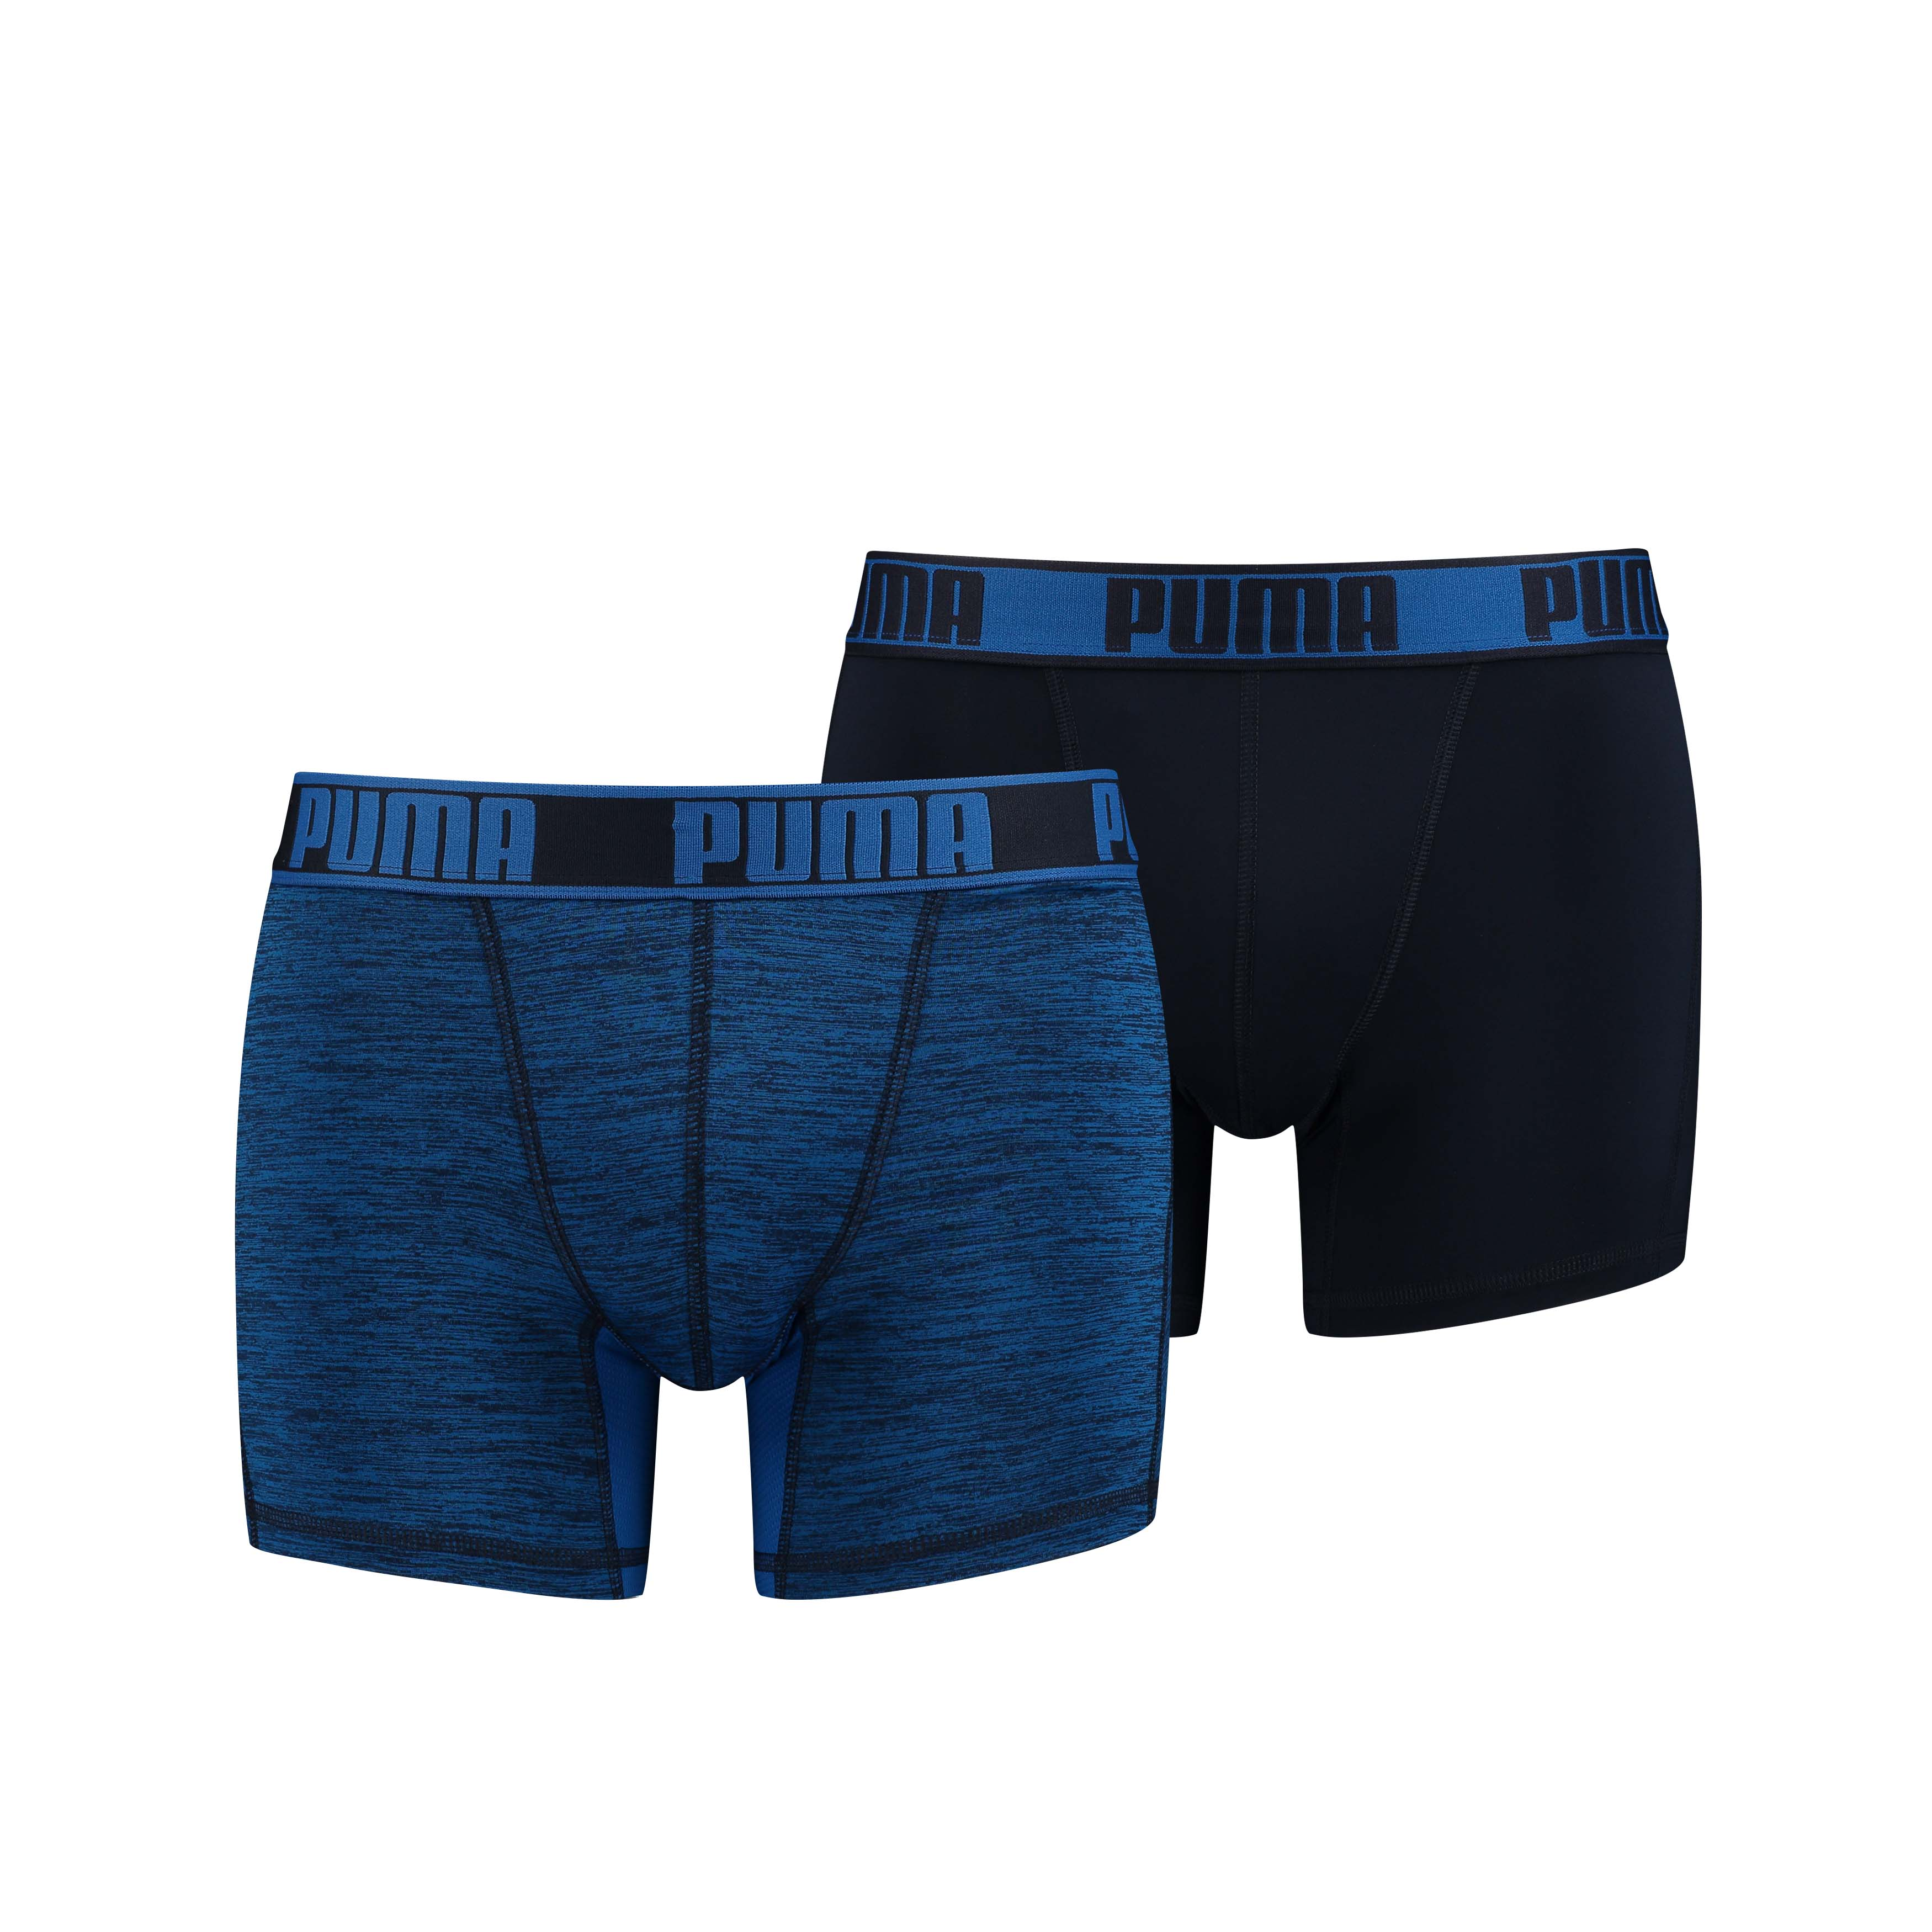 Puma Boxershorts Active Grizzly Melange Blue 2-pack